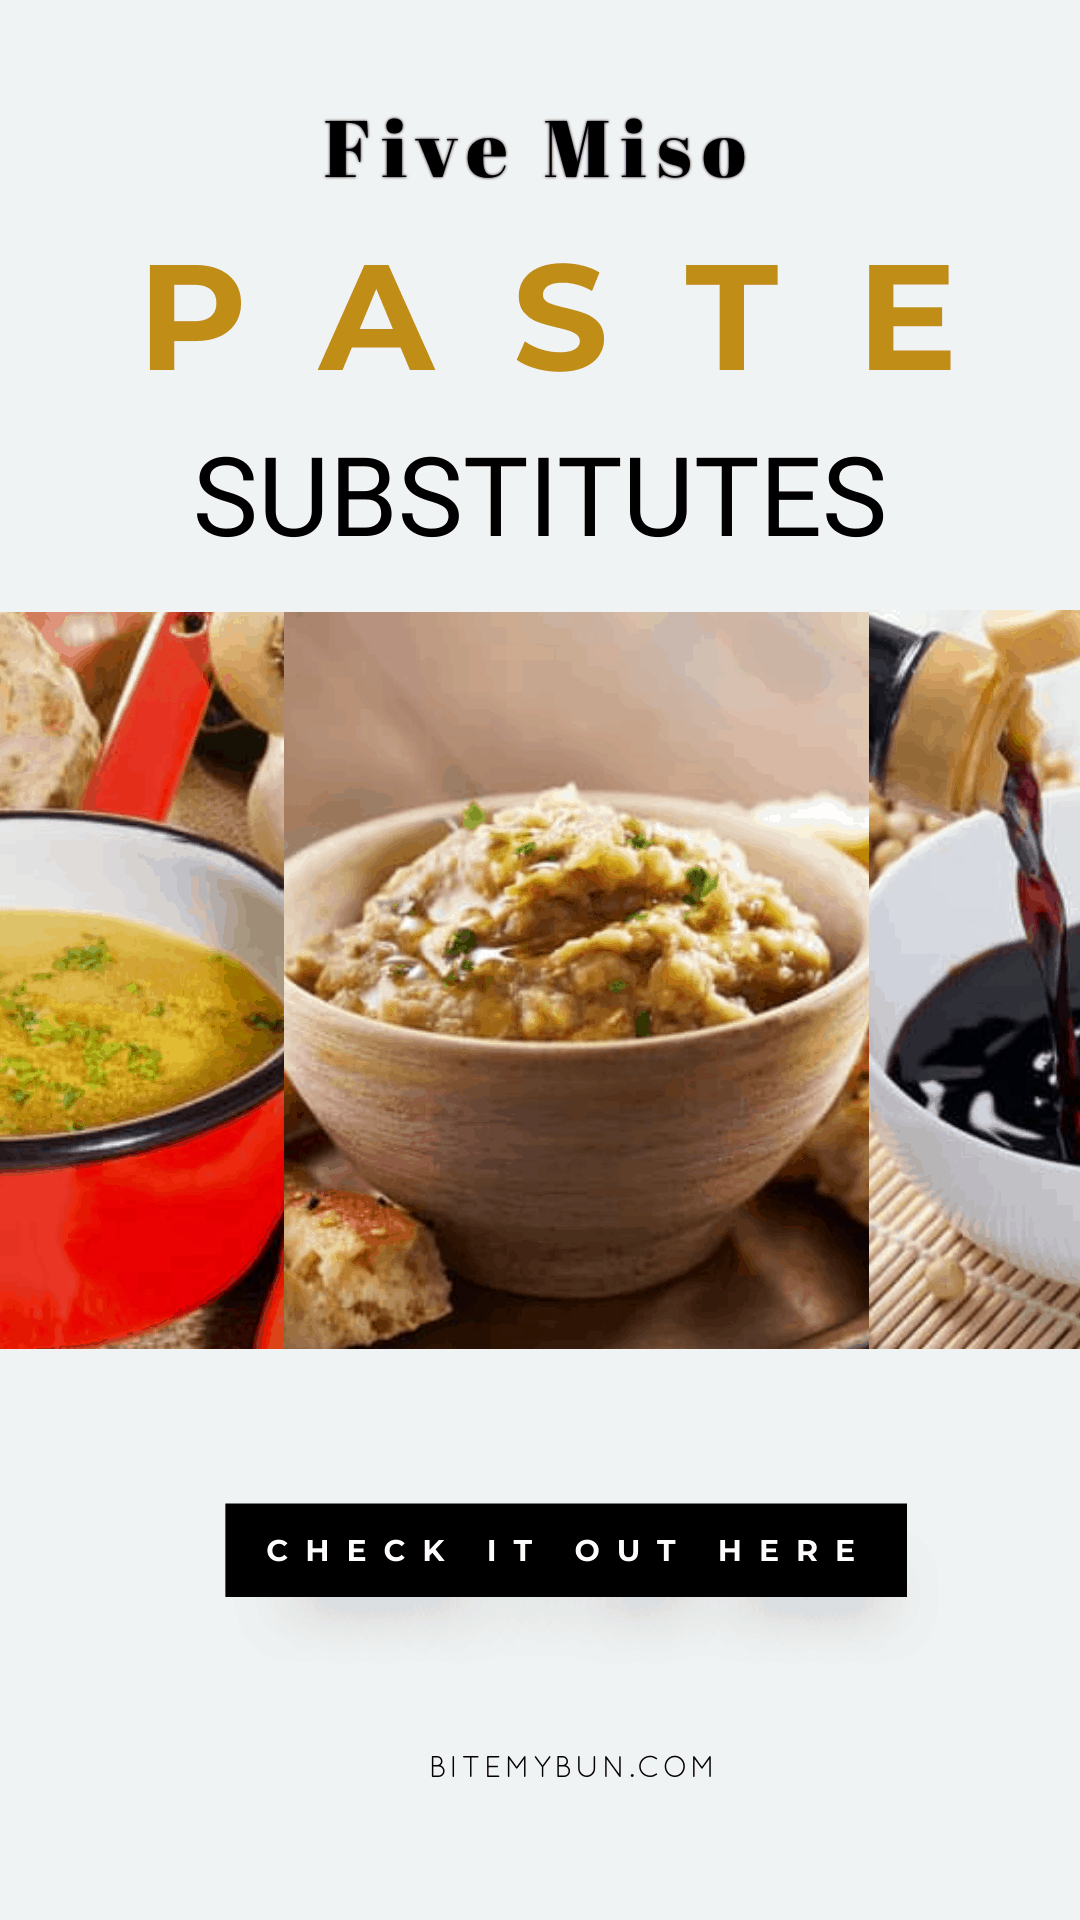 MISO PASTE SUBSTITUTE | 5 OPTIONS YOU COULD ADD TO YOUR DISH INSTEAD